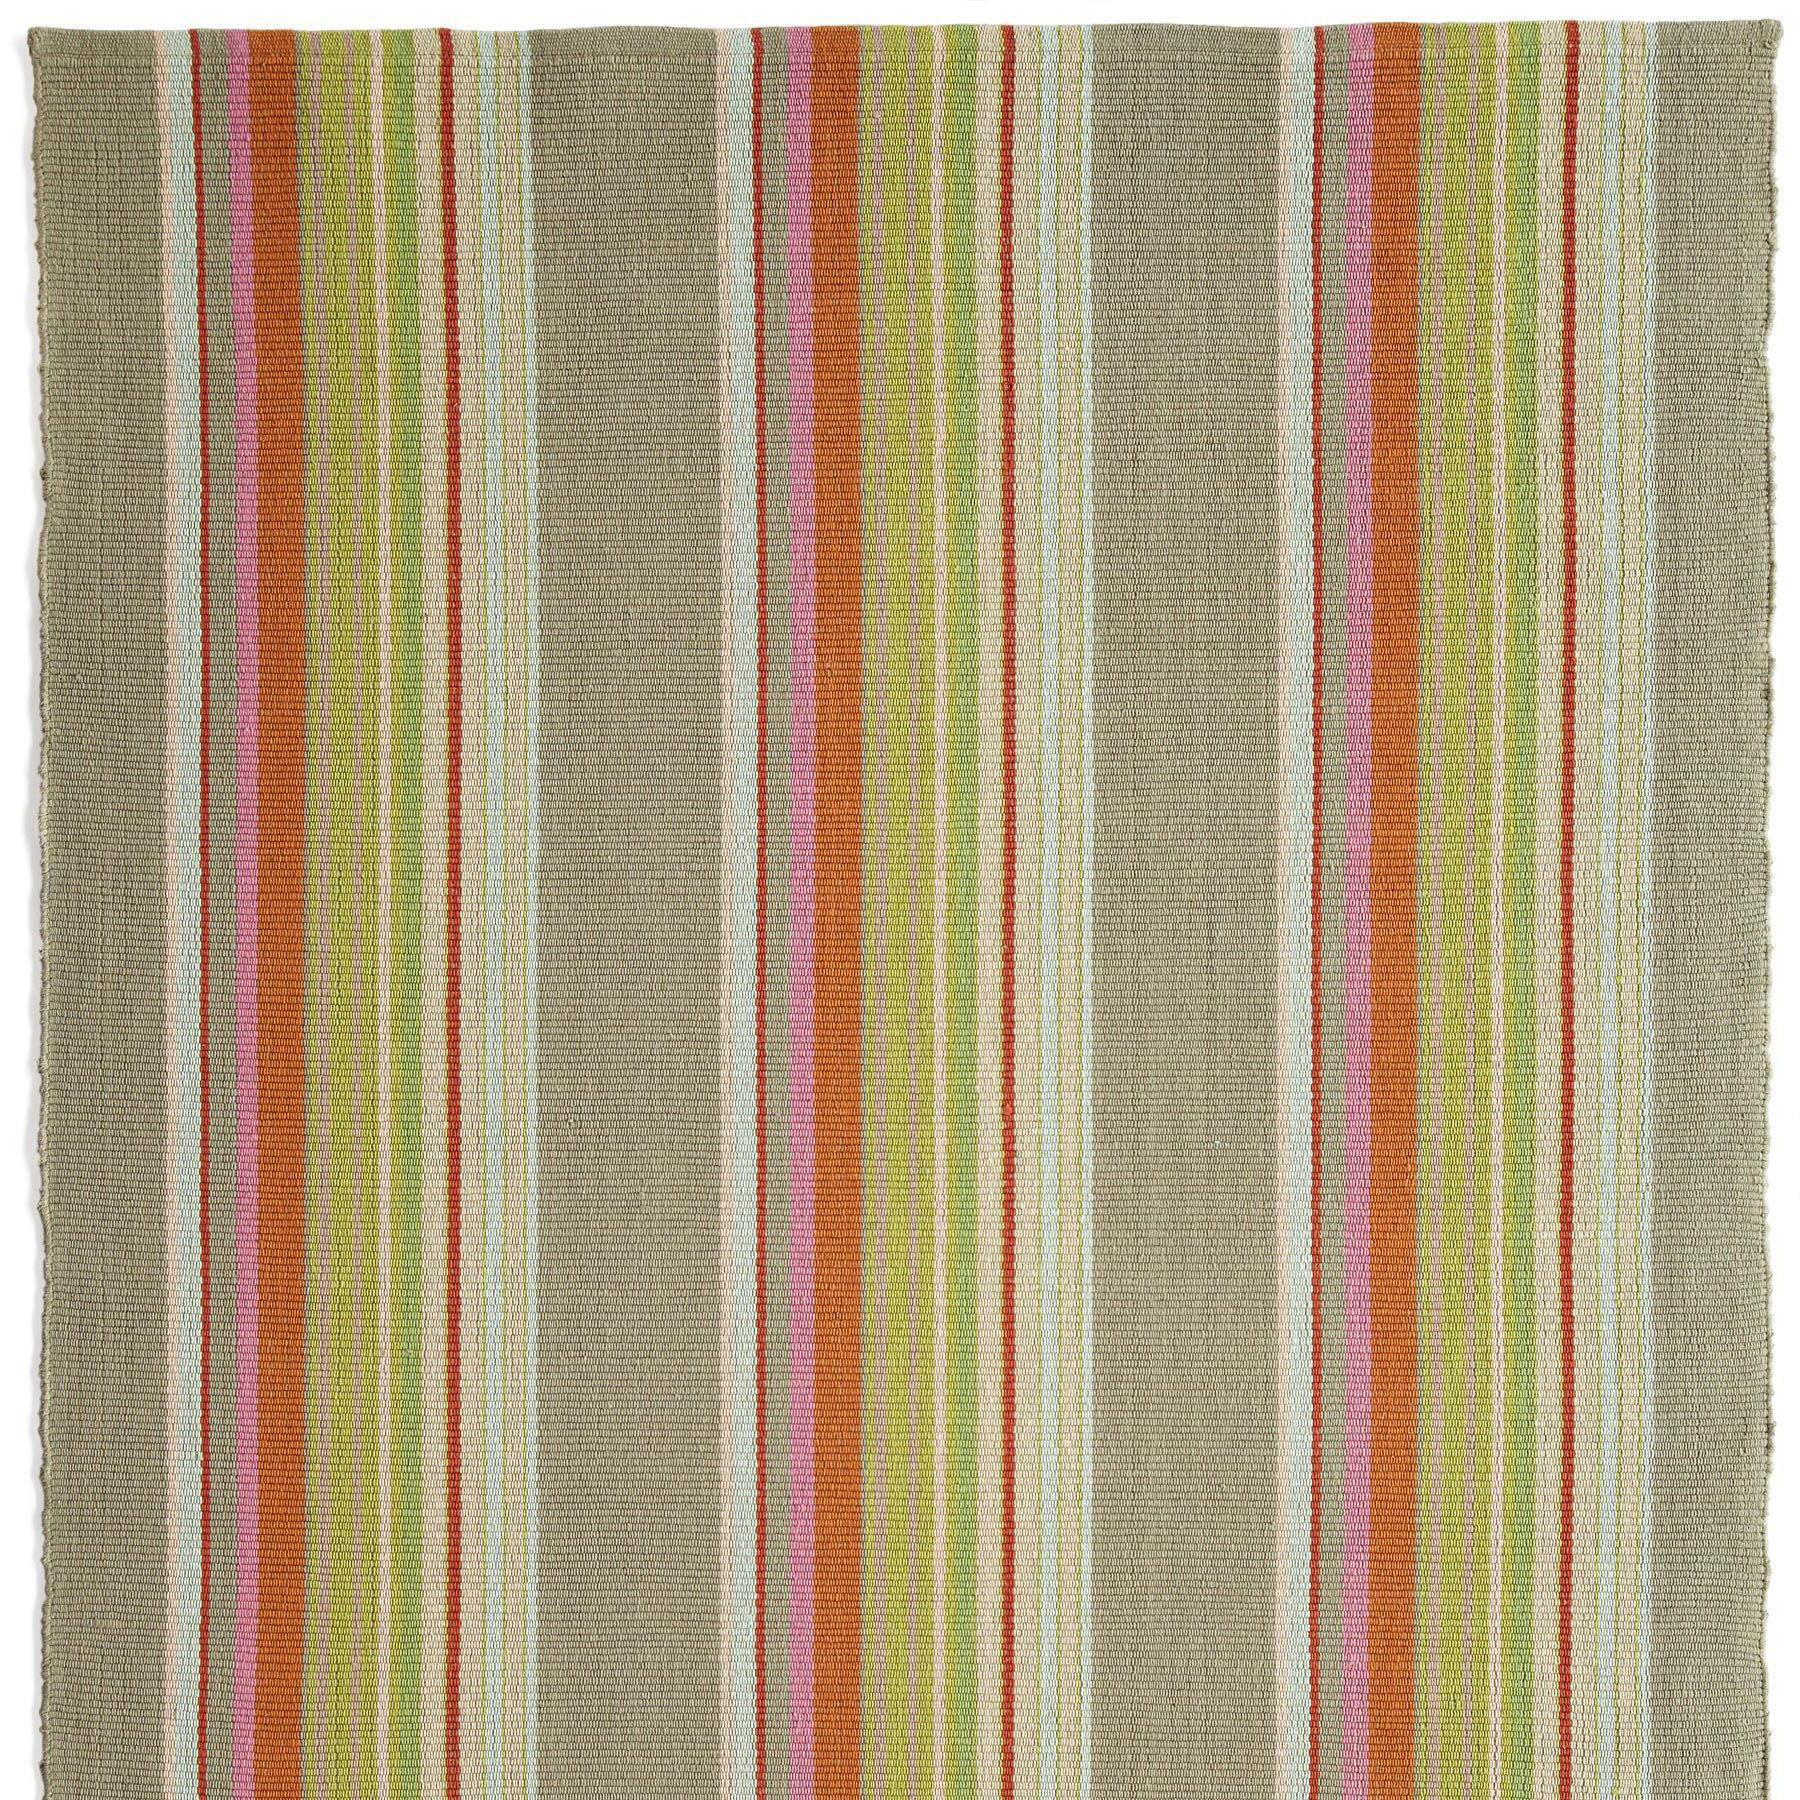 HADLERY STRIPE WOVEN RUG: View 1